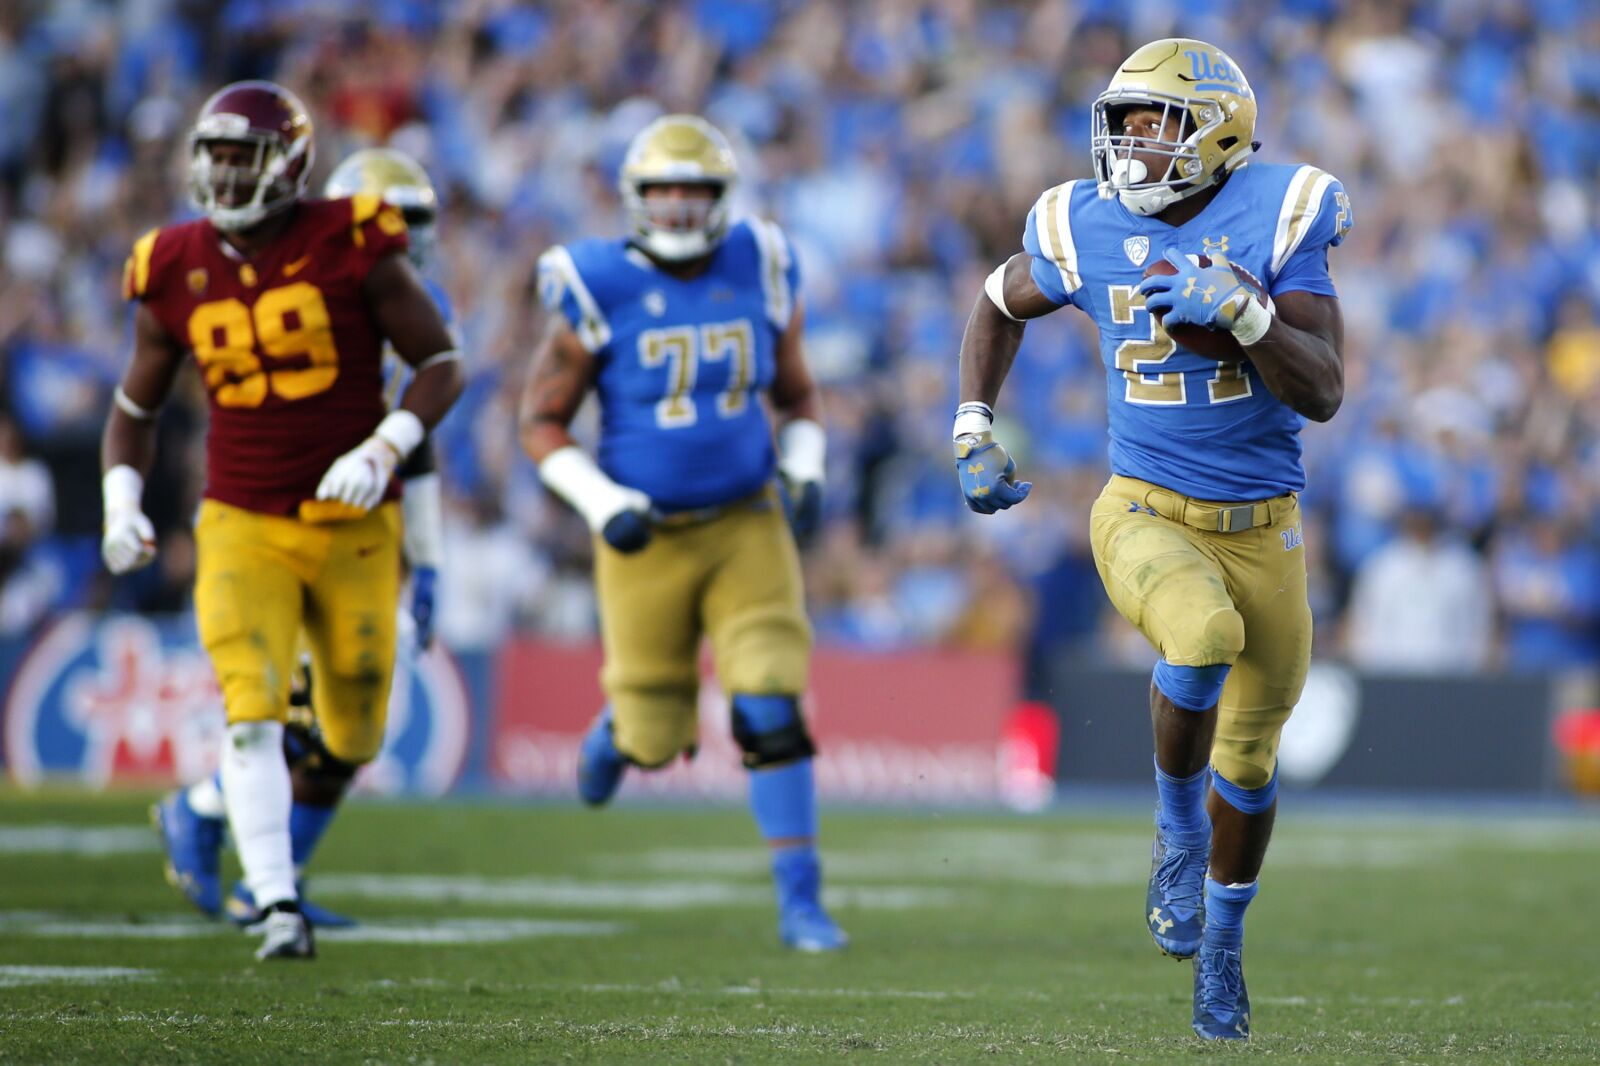 UCLA Football: The good, the bad and the Bruins vs. USC